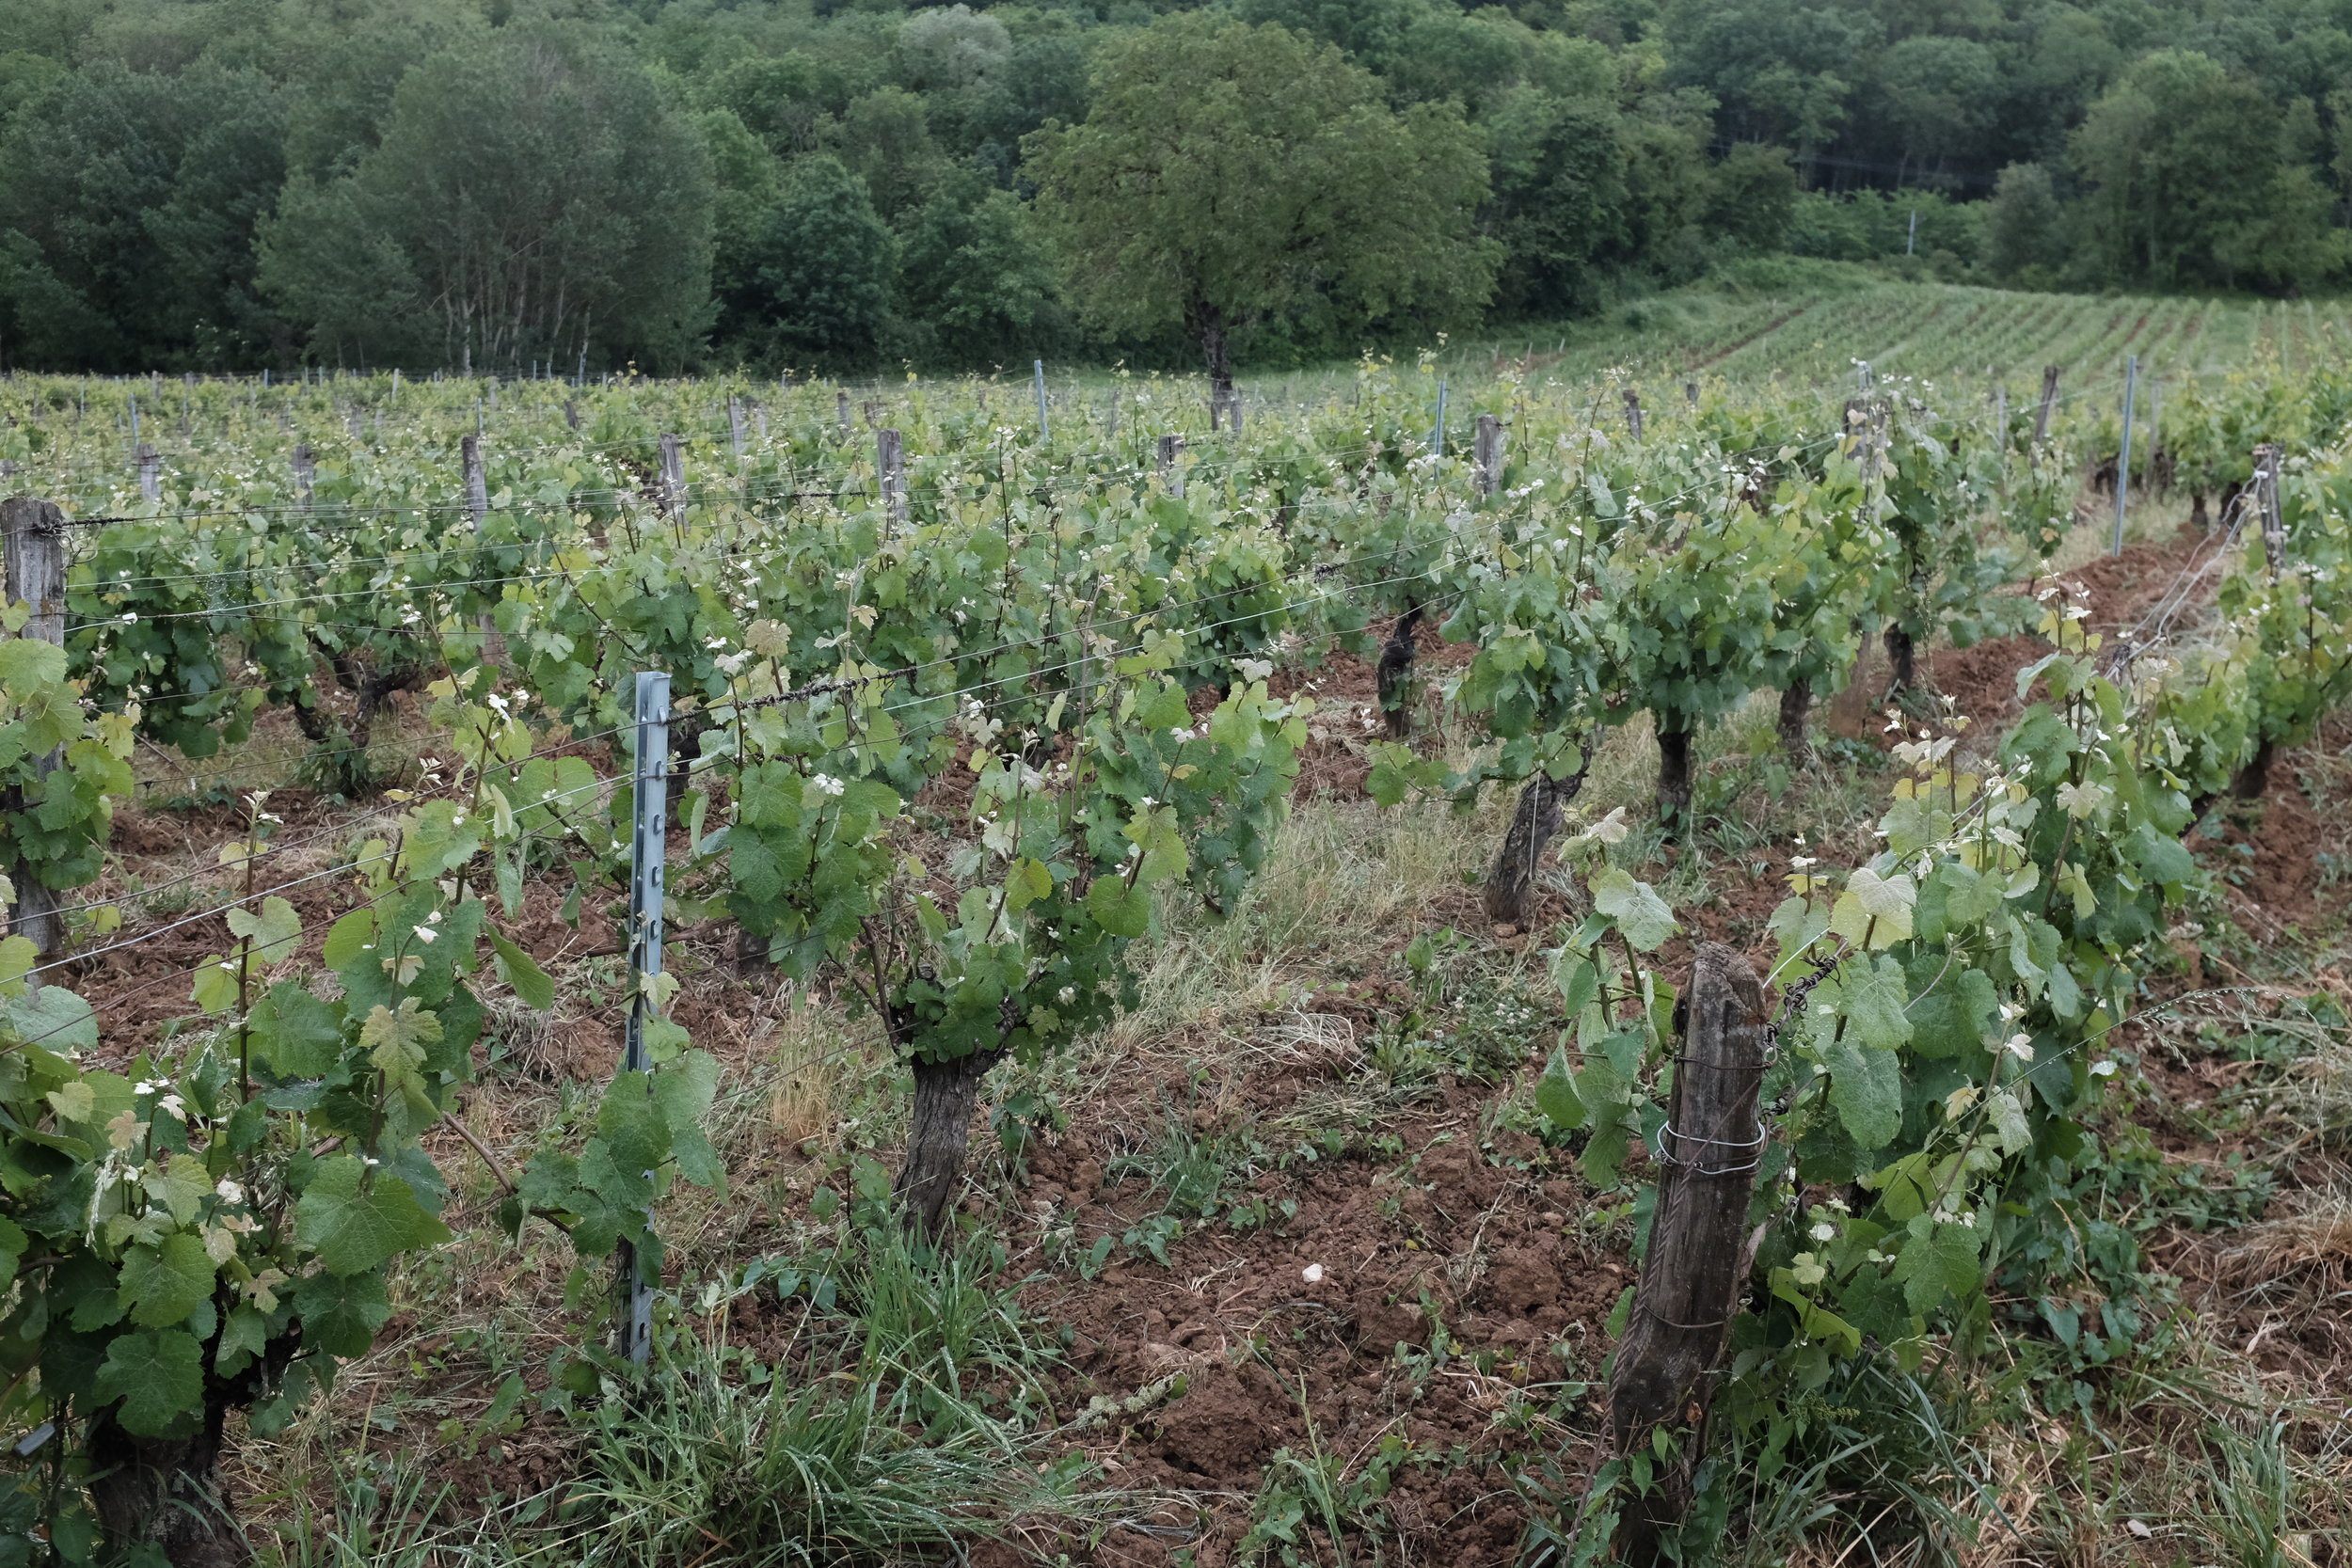 Vineyards right behind the Domaine du Pelican winery. June 2019.